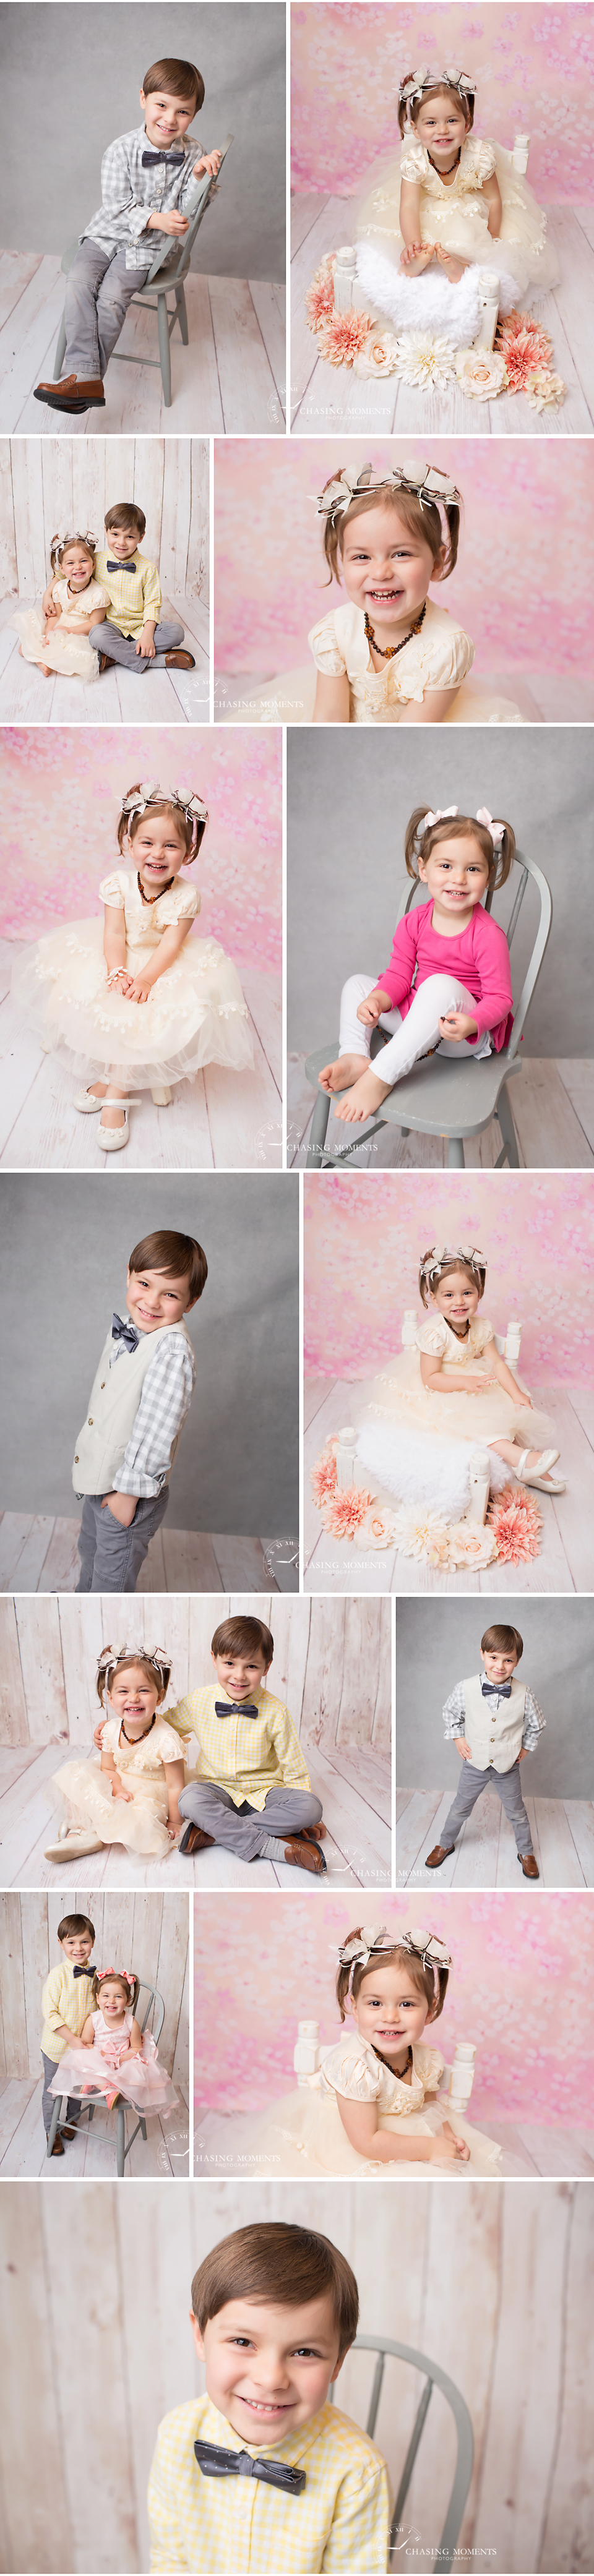 children photographer northern virginia_410